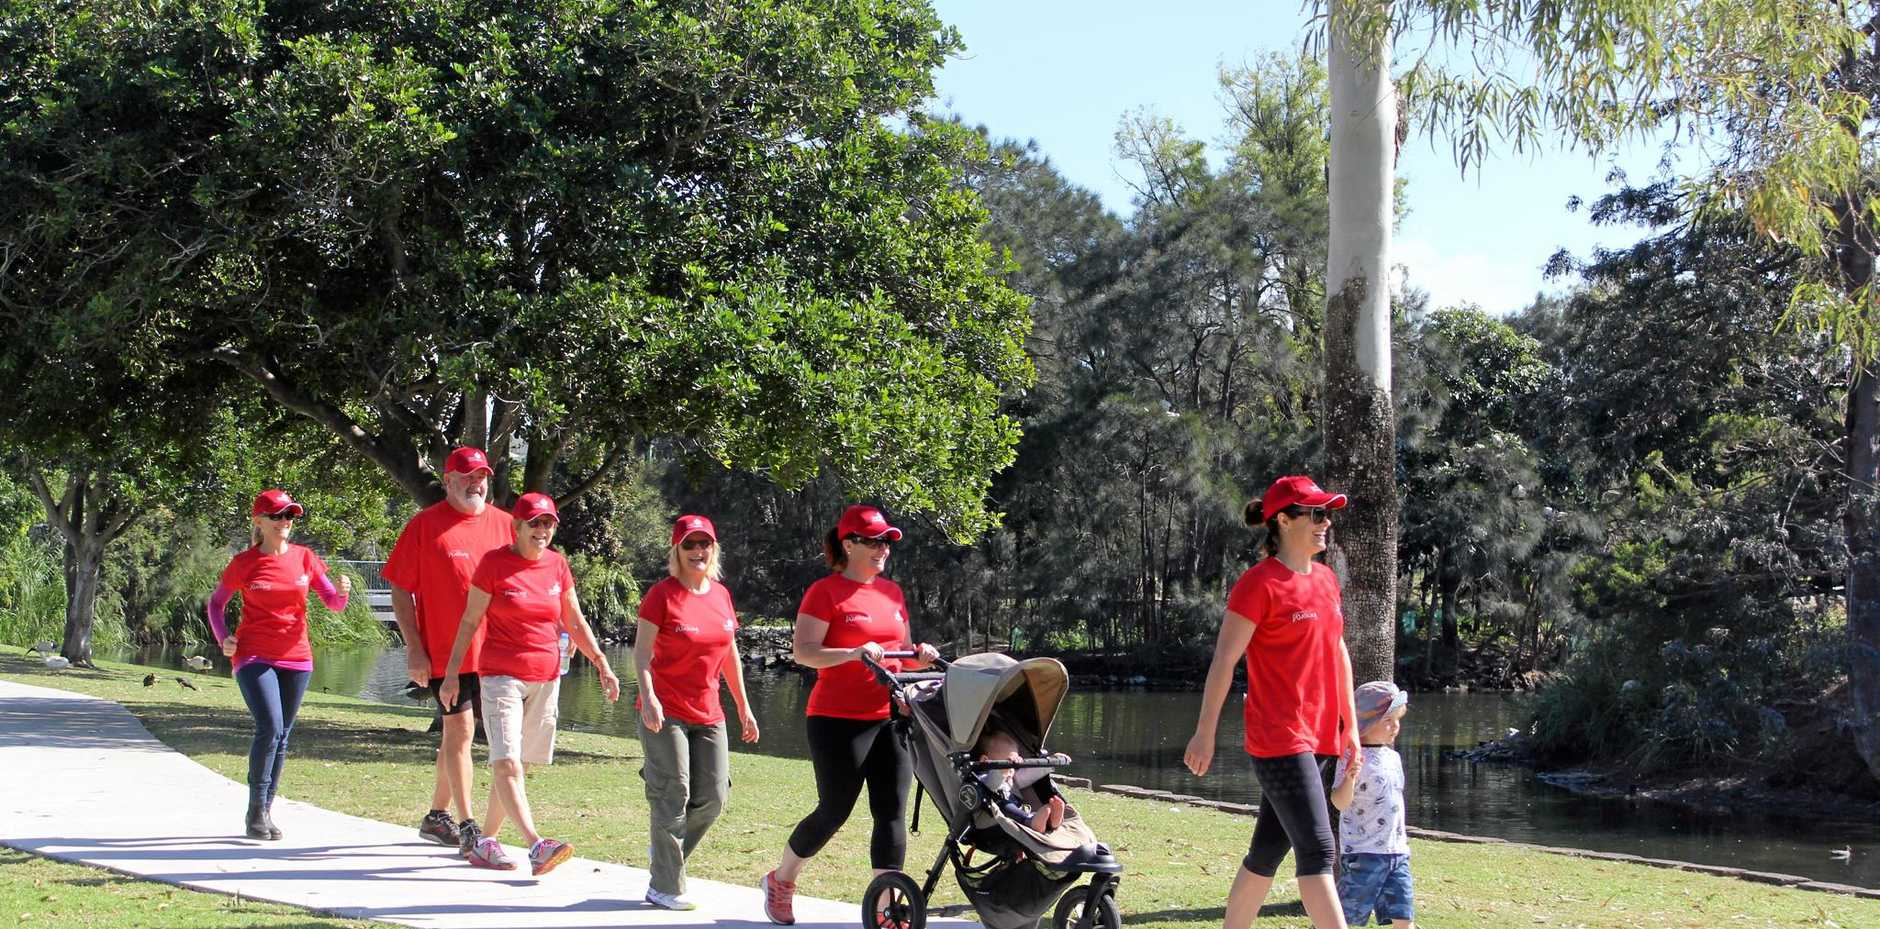 UP AND ACTIVE: Intergenerational walkers at last year's Duckpond Dash which is happening again on Saturday as part of the 2017 Senior Week celebrations.